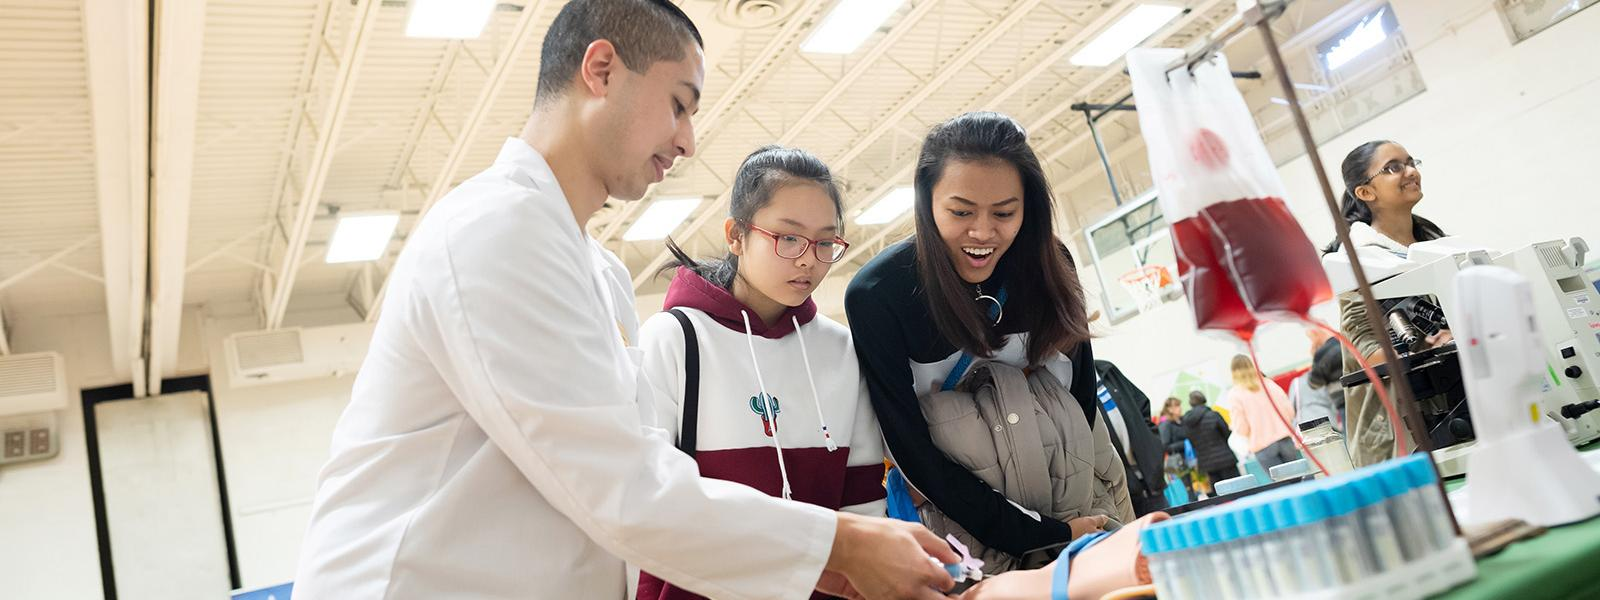 Falls Church Academy health sciences students observe a demonstration at a health care college and career fair.